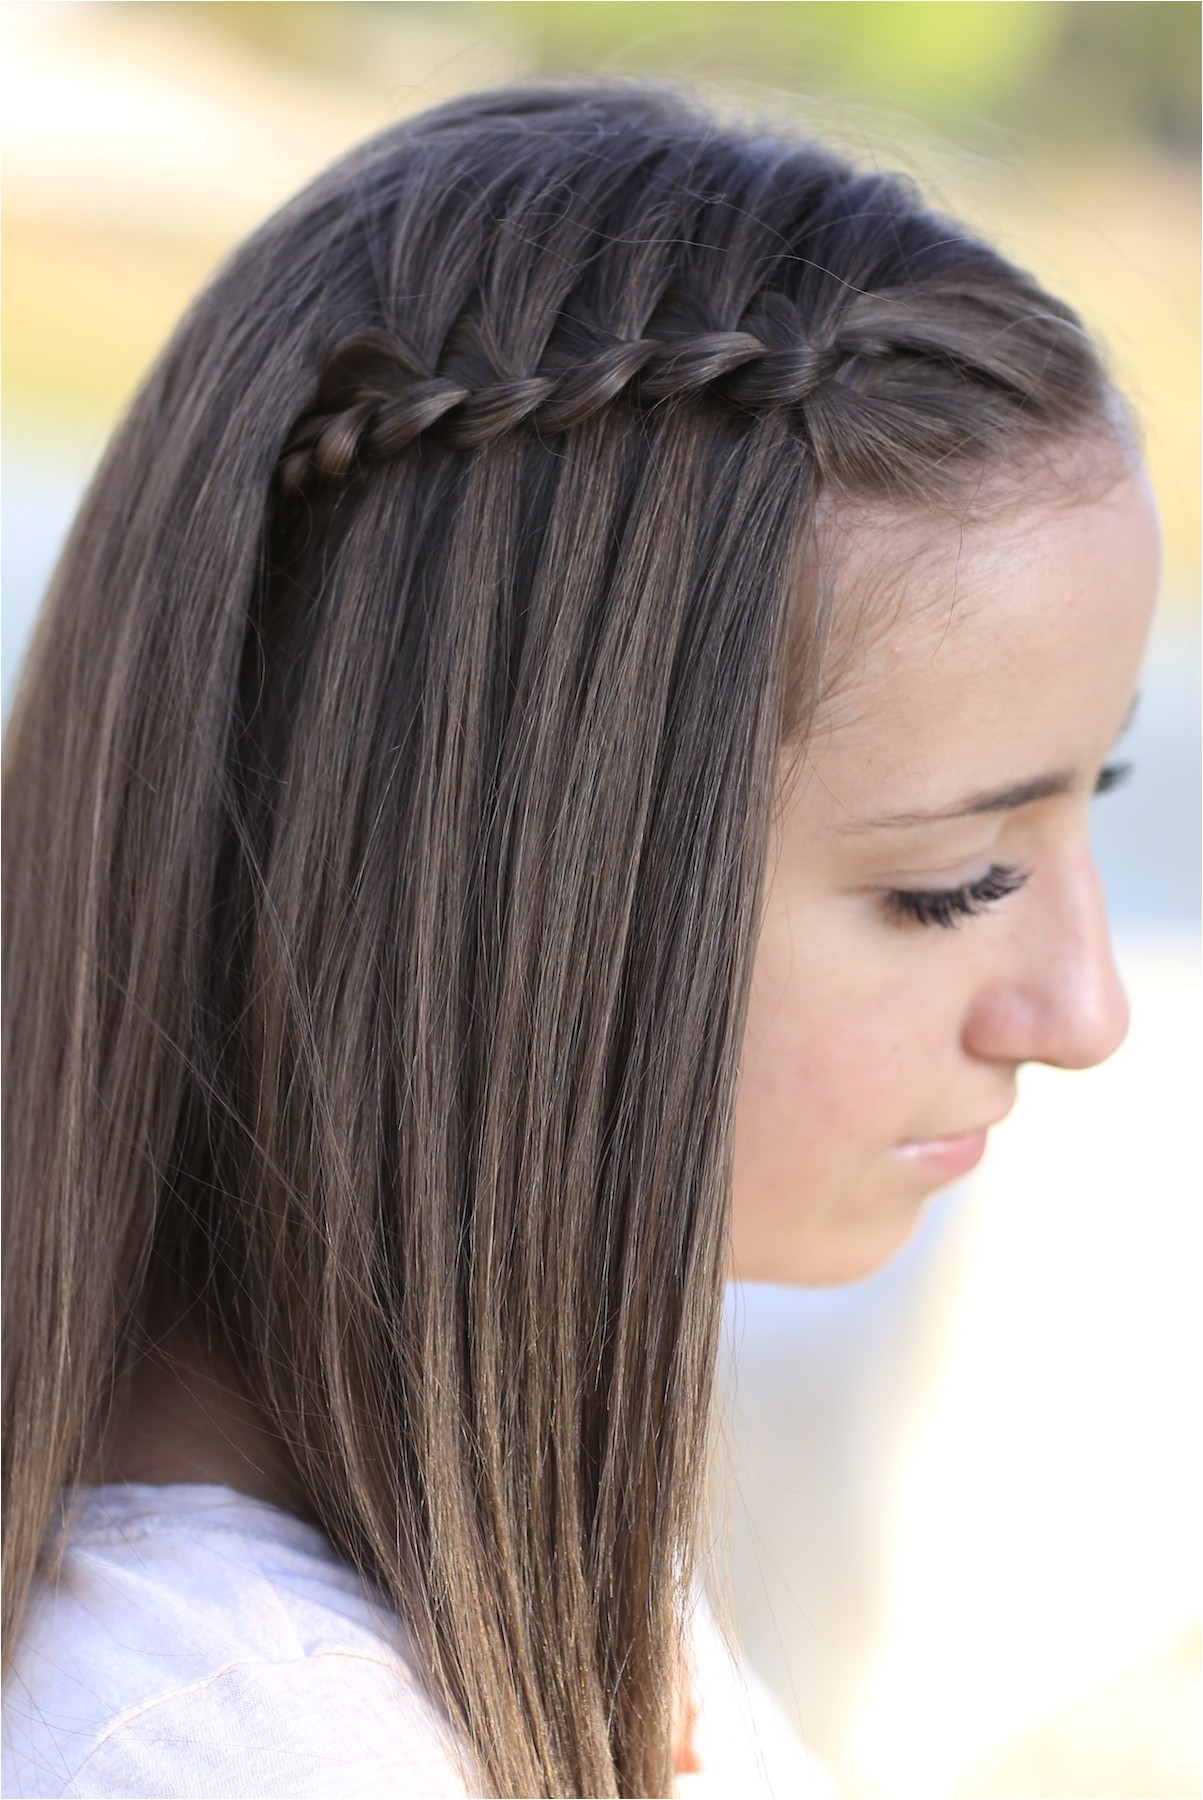 ideas for cute hairstyles for 3 year olds